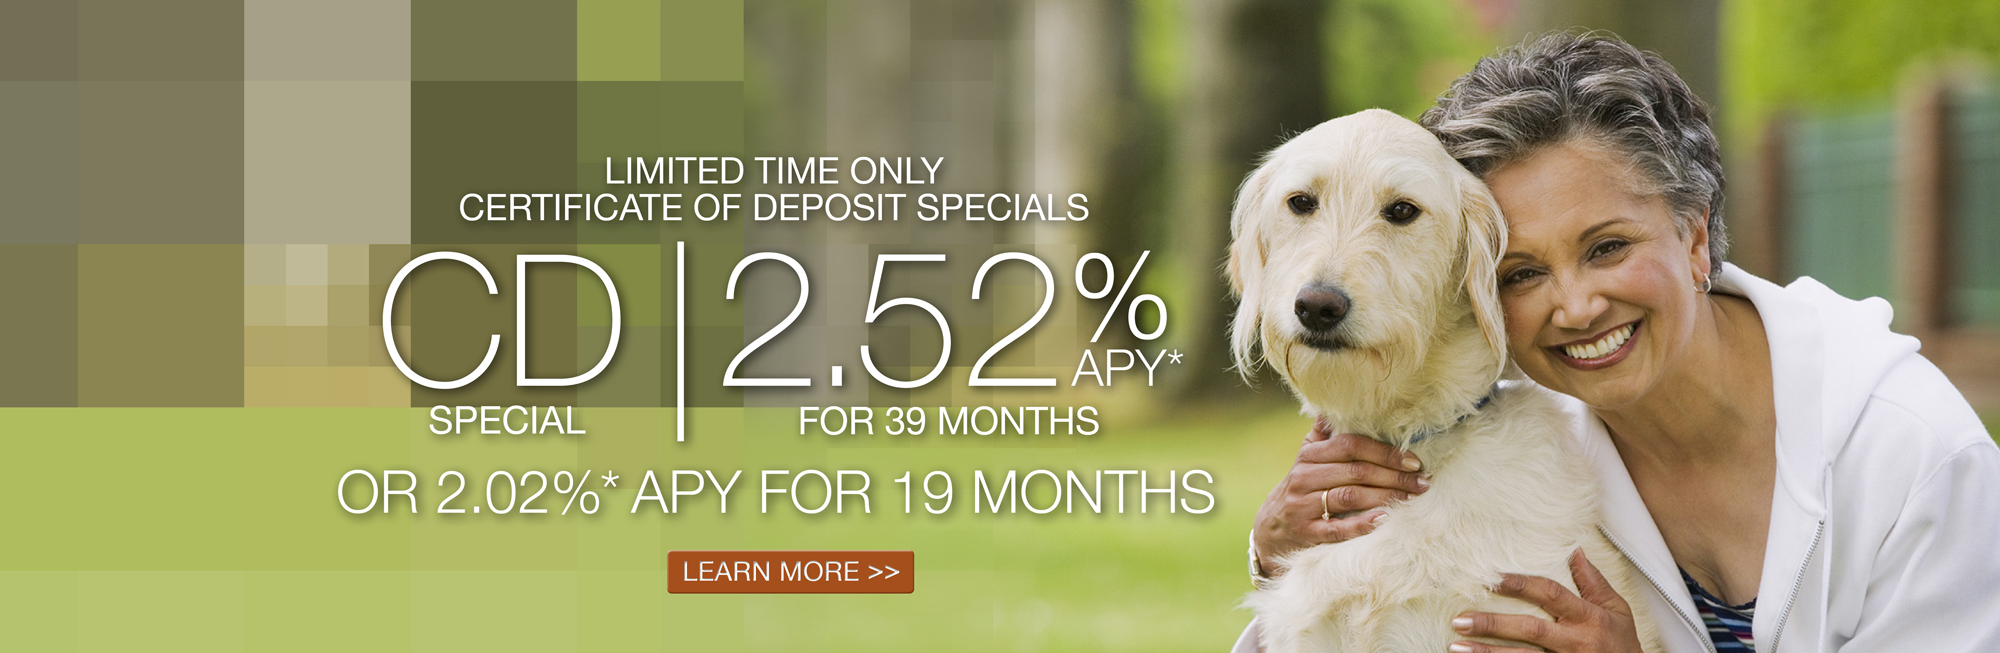 Limited time only Certificate of Deposit Specials: 2.52%* APY for 39 months or 2.02%* APY for 19 months. Click to learn more.